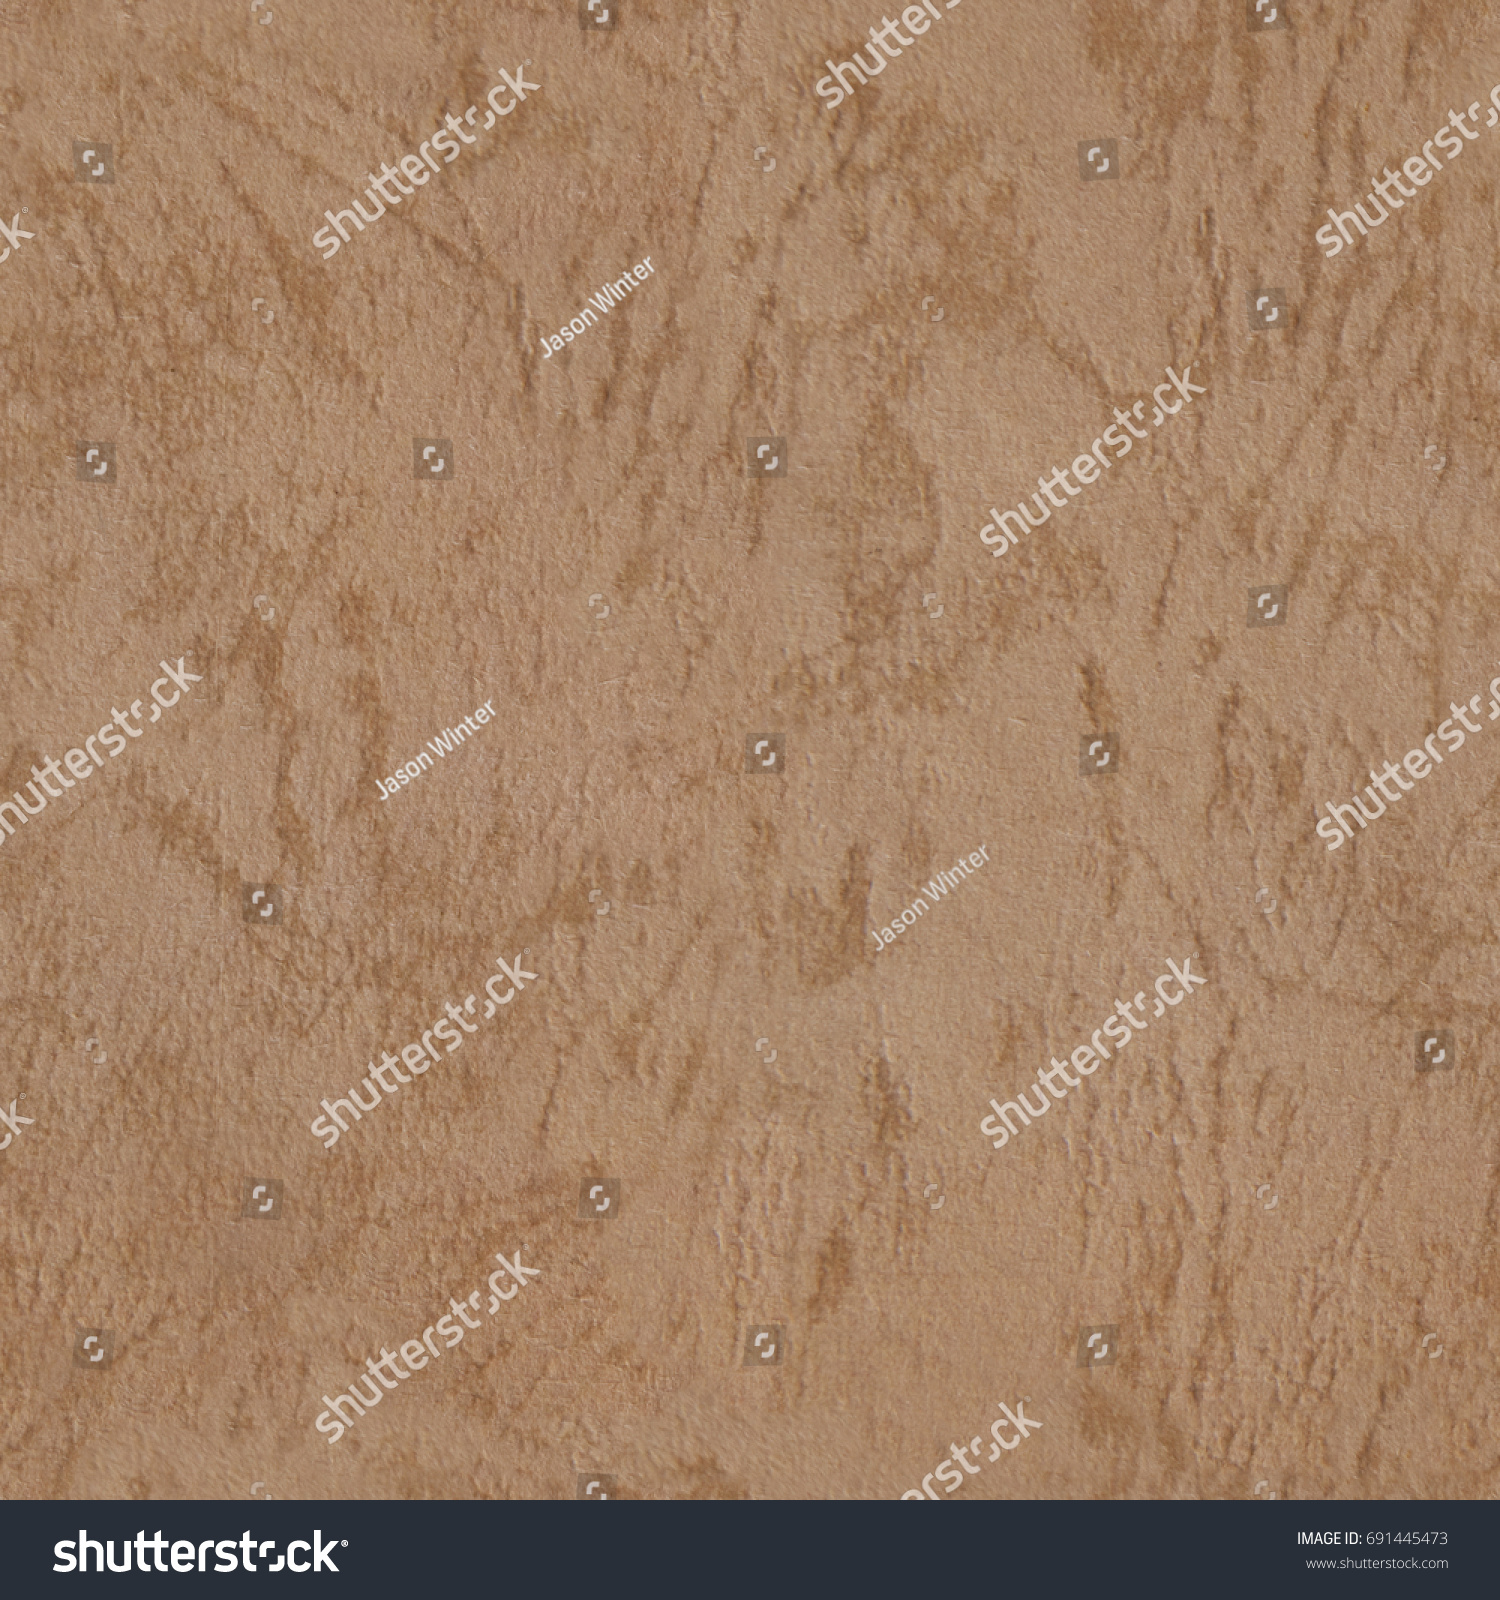 Repeating Leather Background Texture Tileable Wallpaper Stock Photo